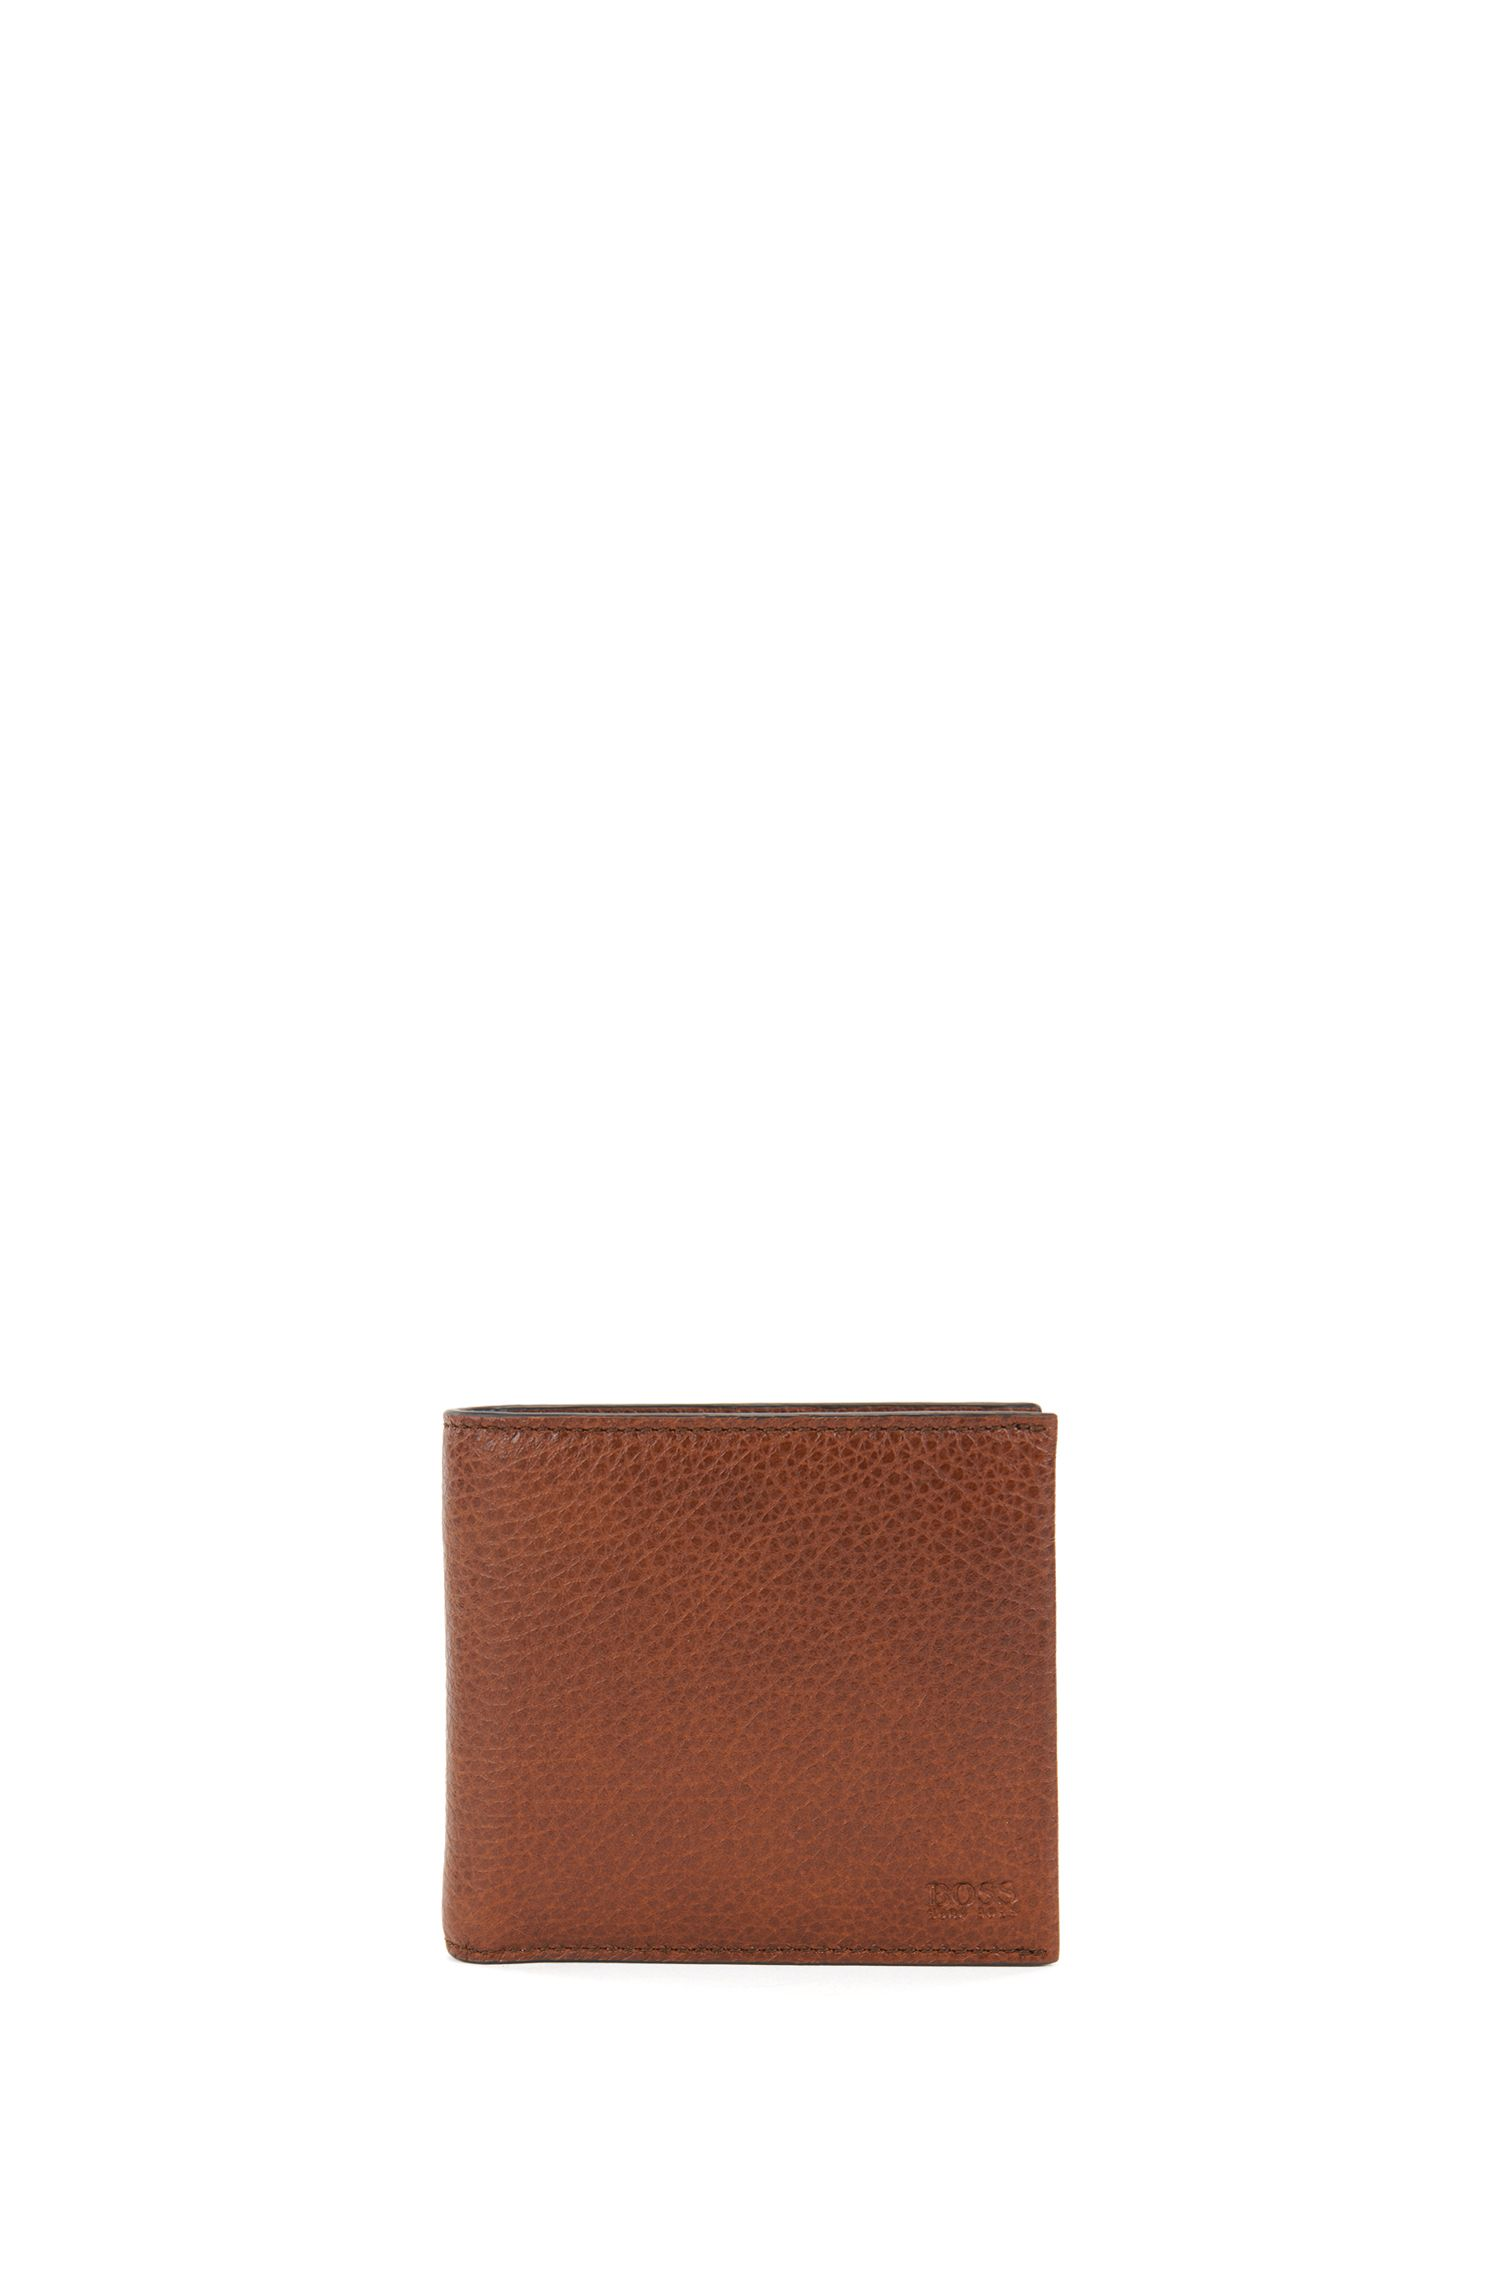 Grained Italian-leather billfold wallet with coin pocket